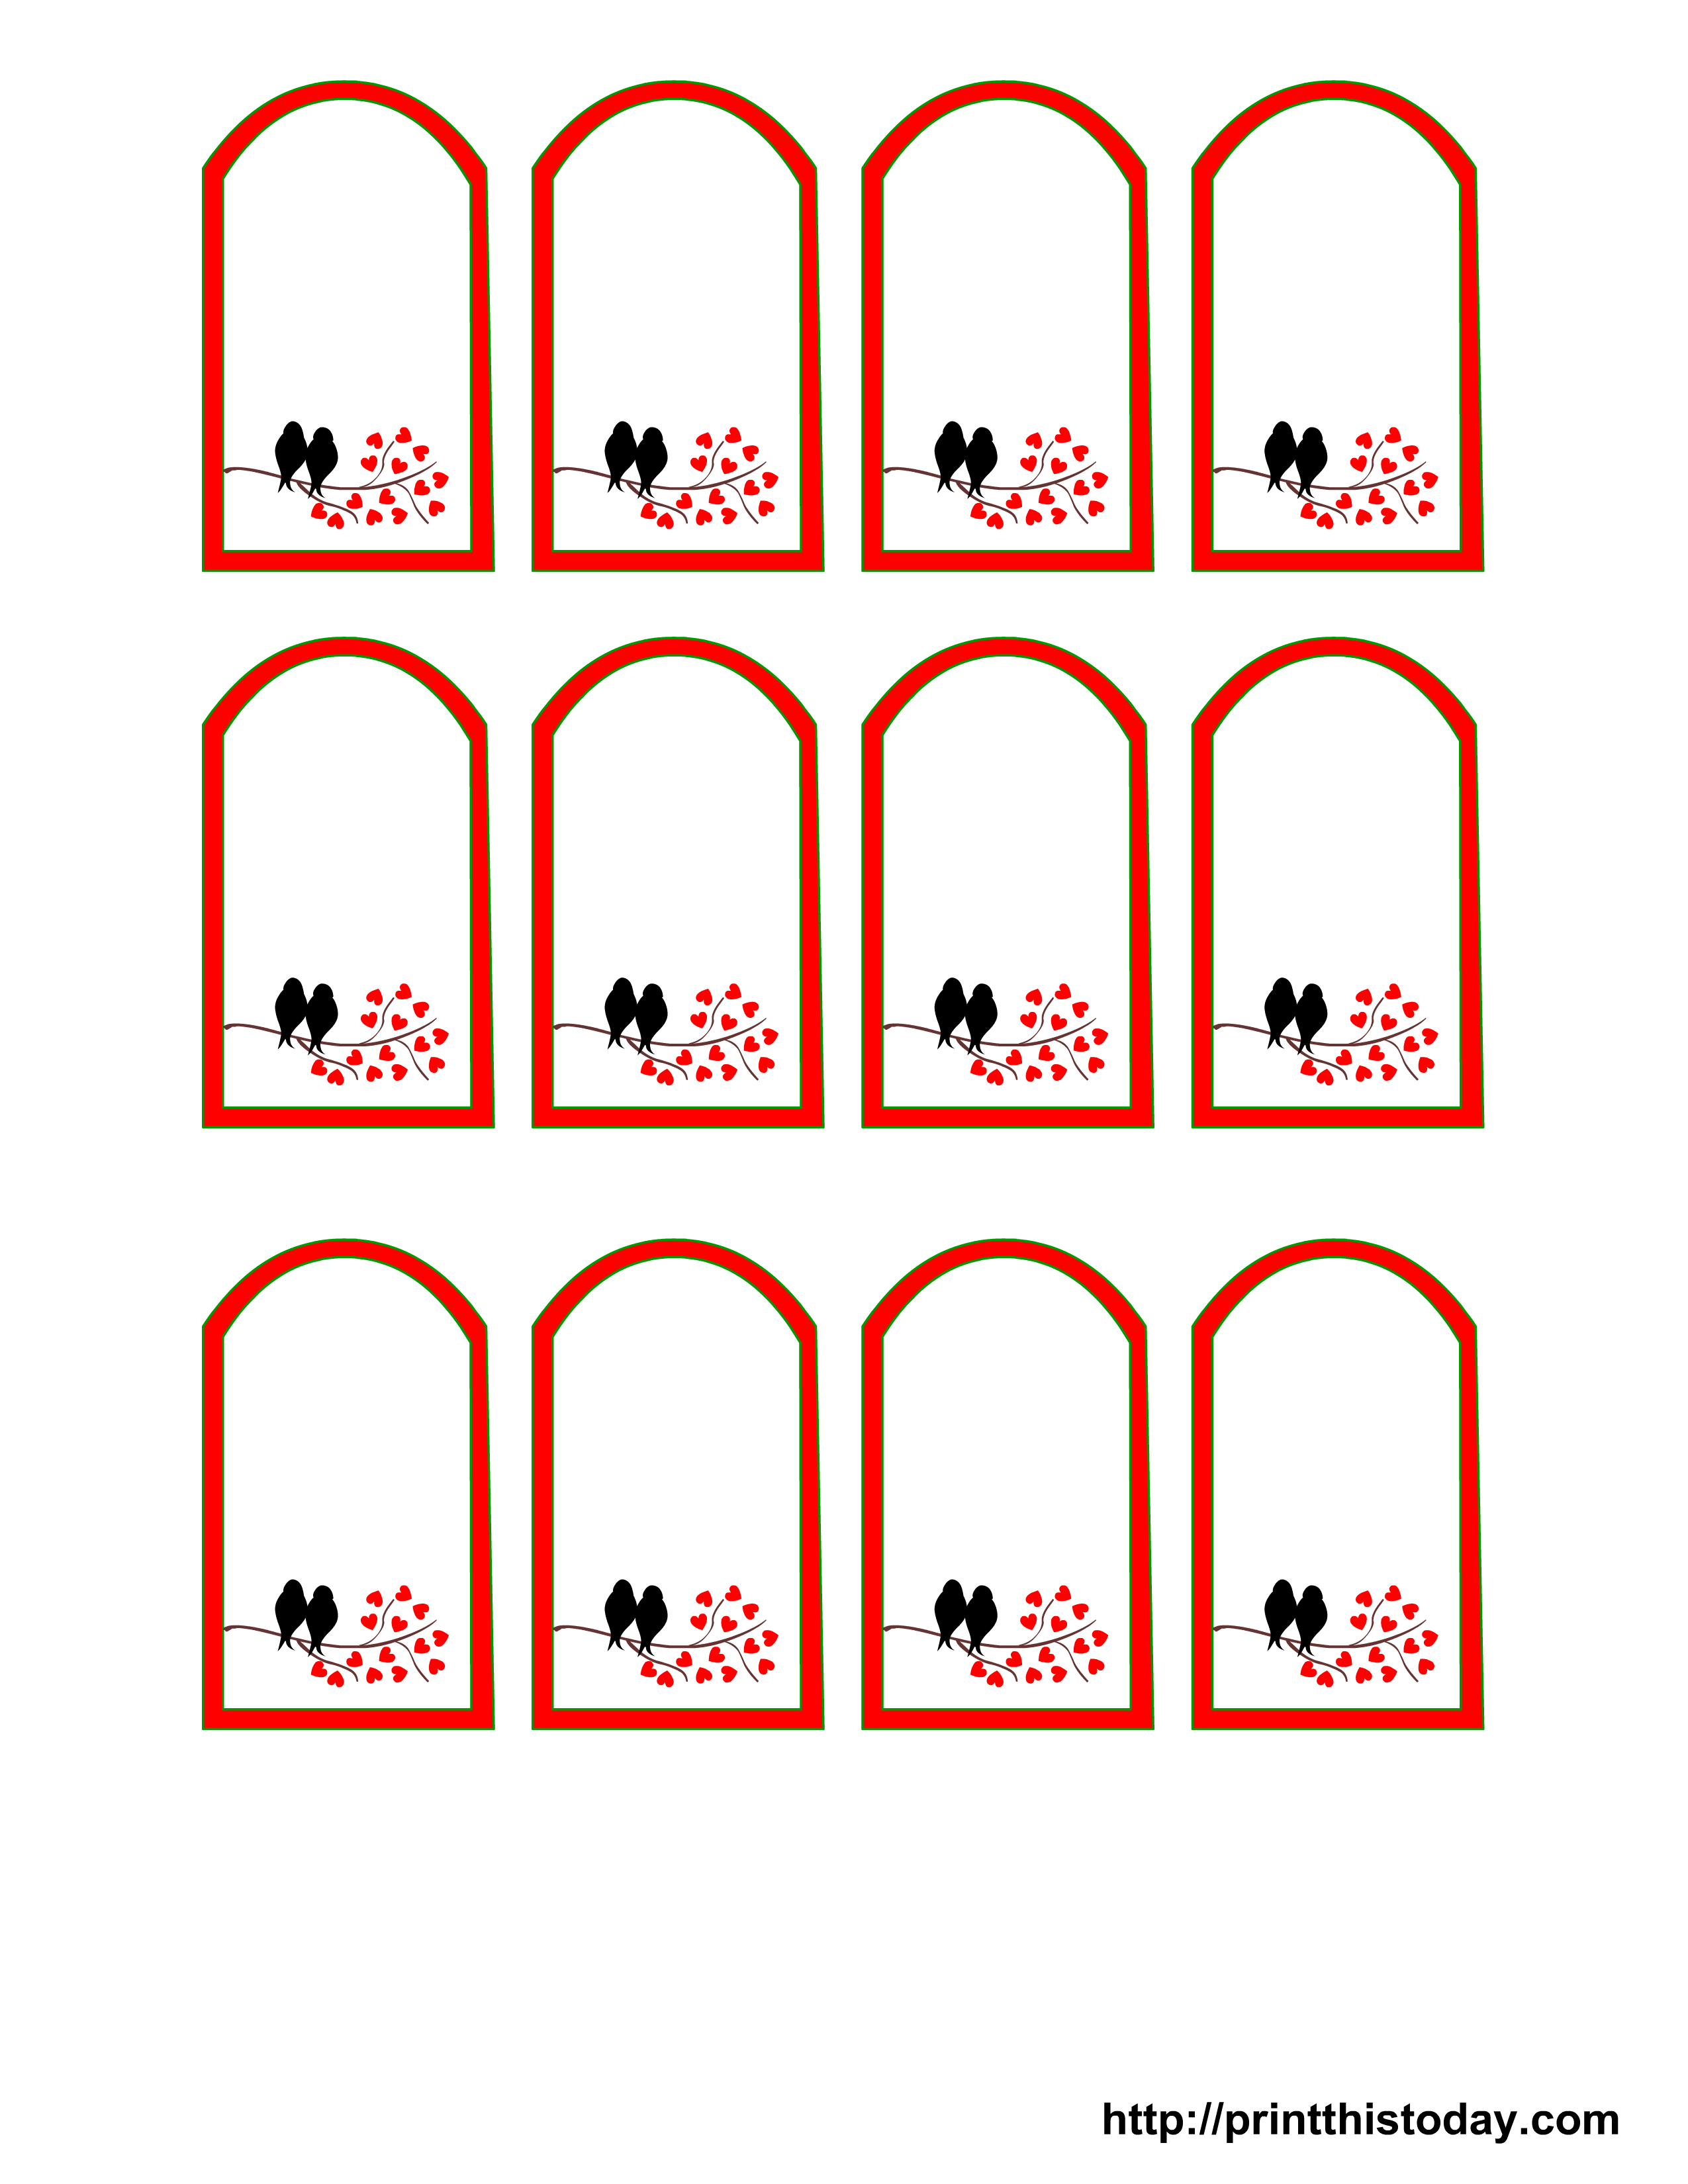 7 Images of Free Printable Favor Tags